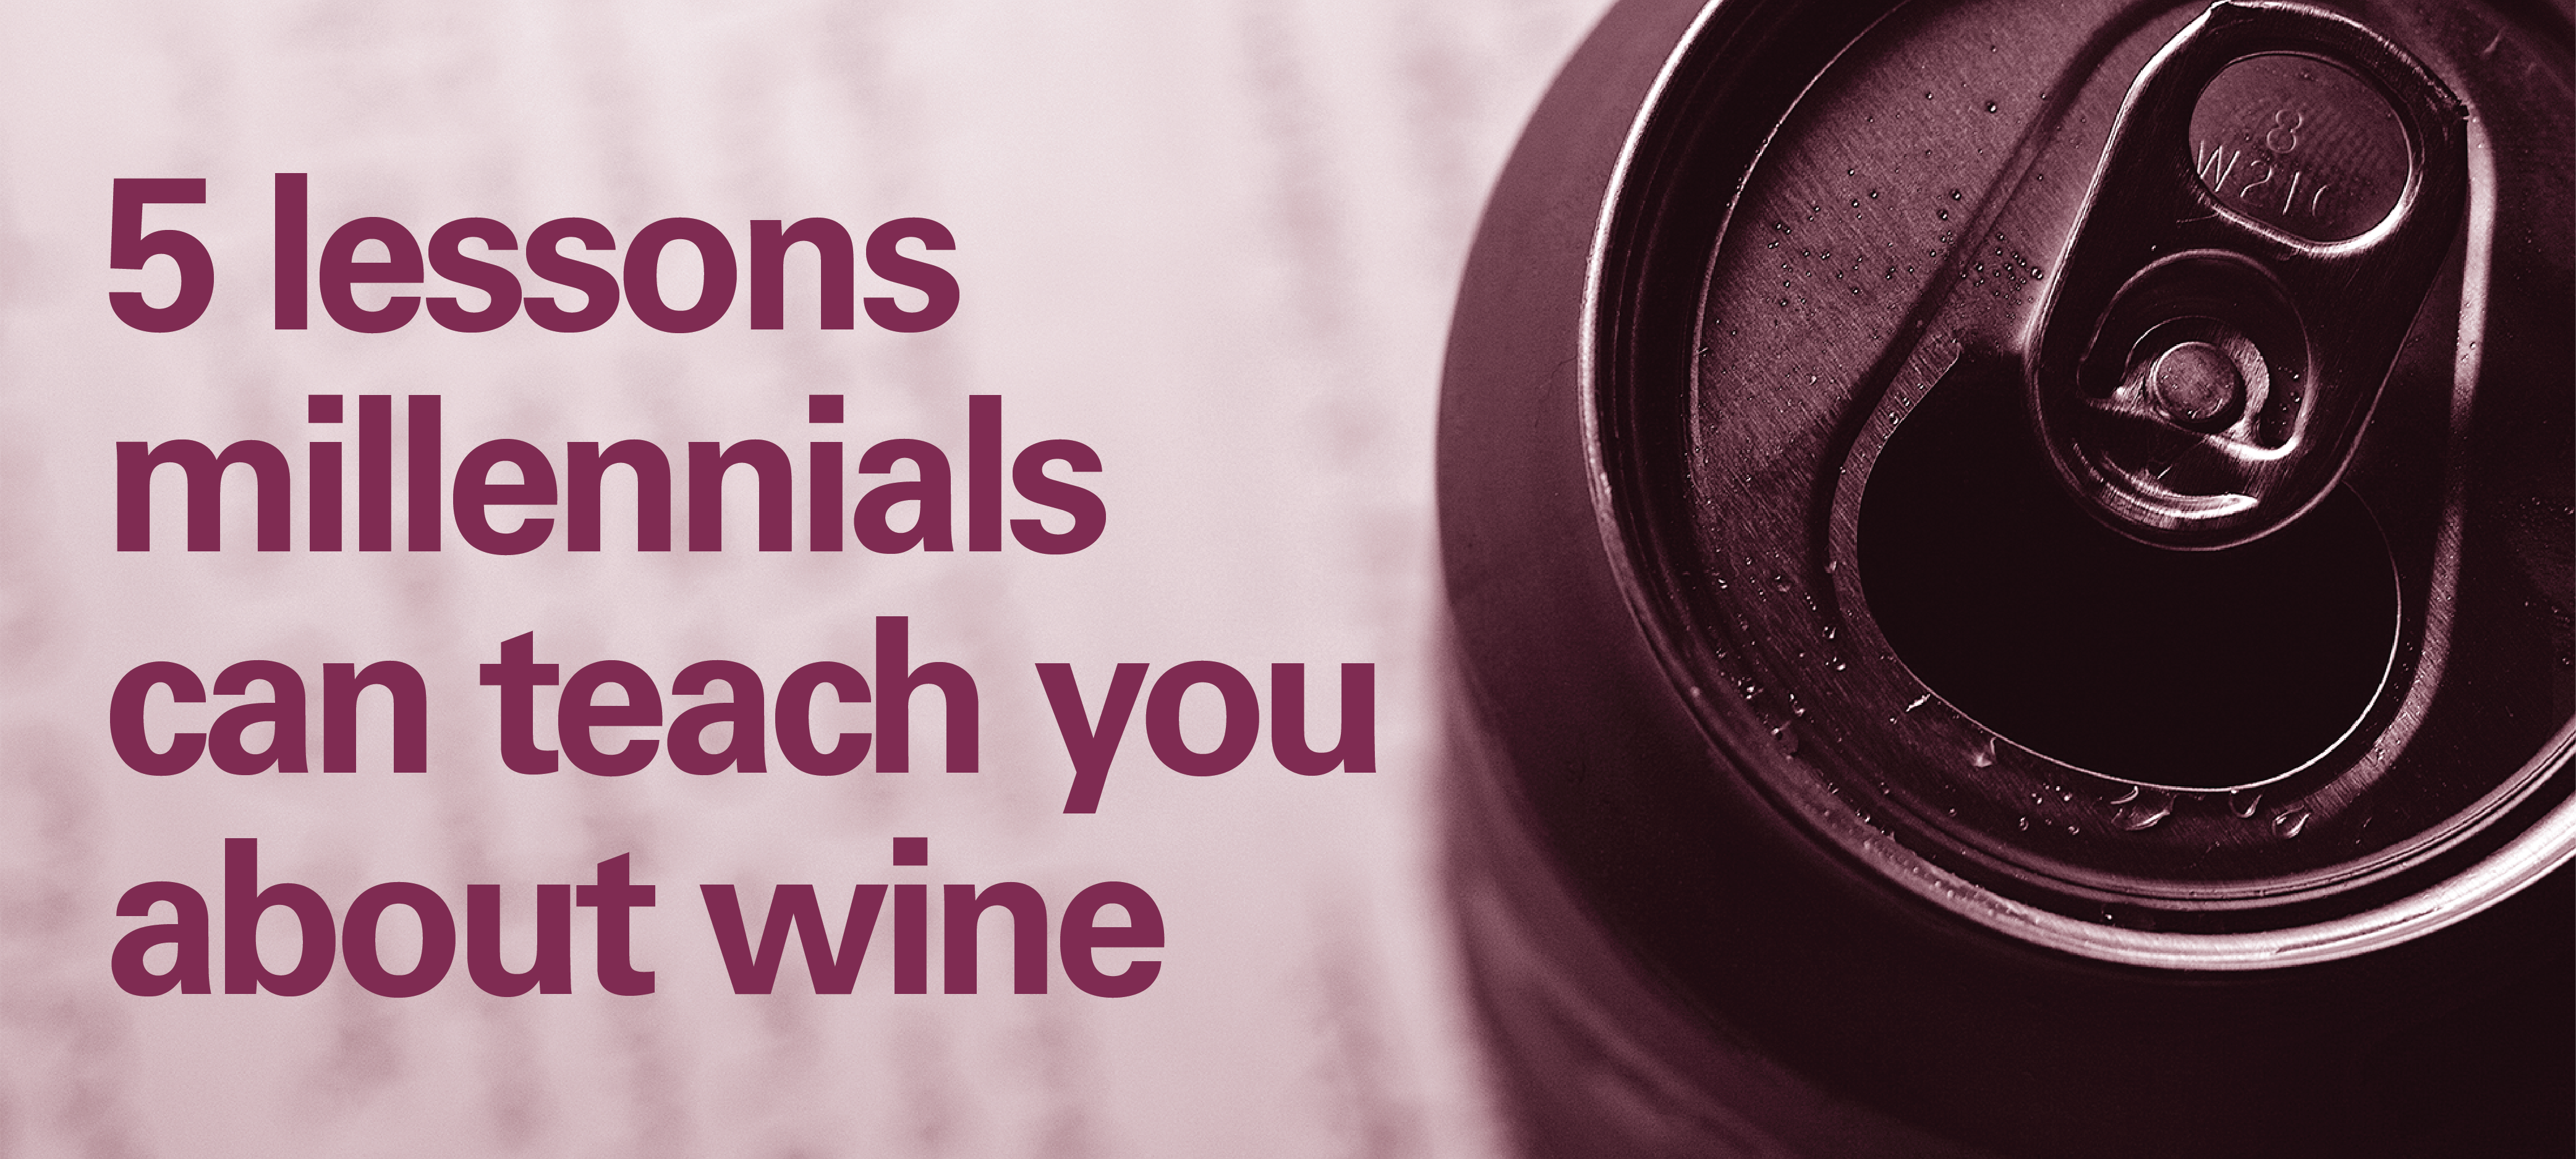 5 lessons millennials can teach you about wine